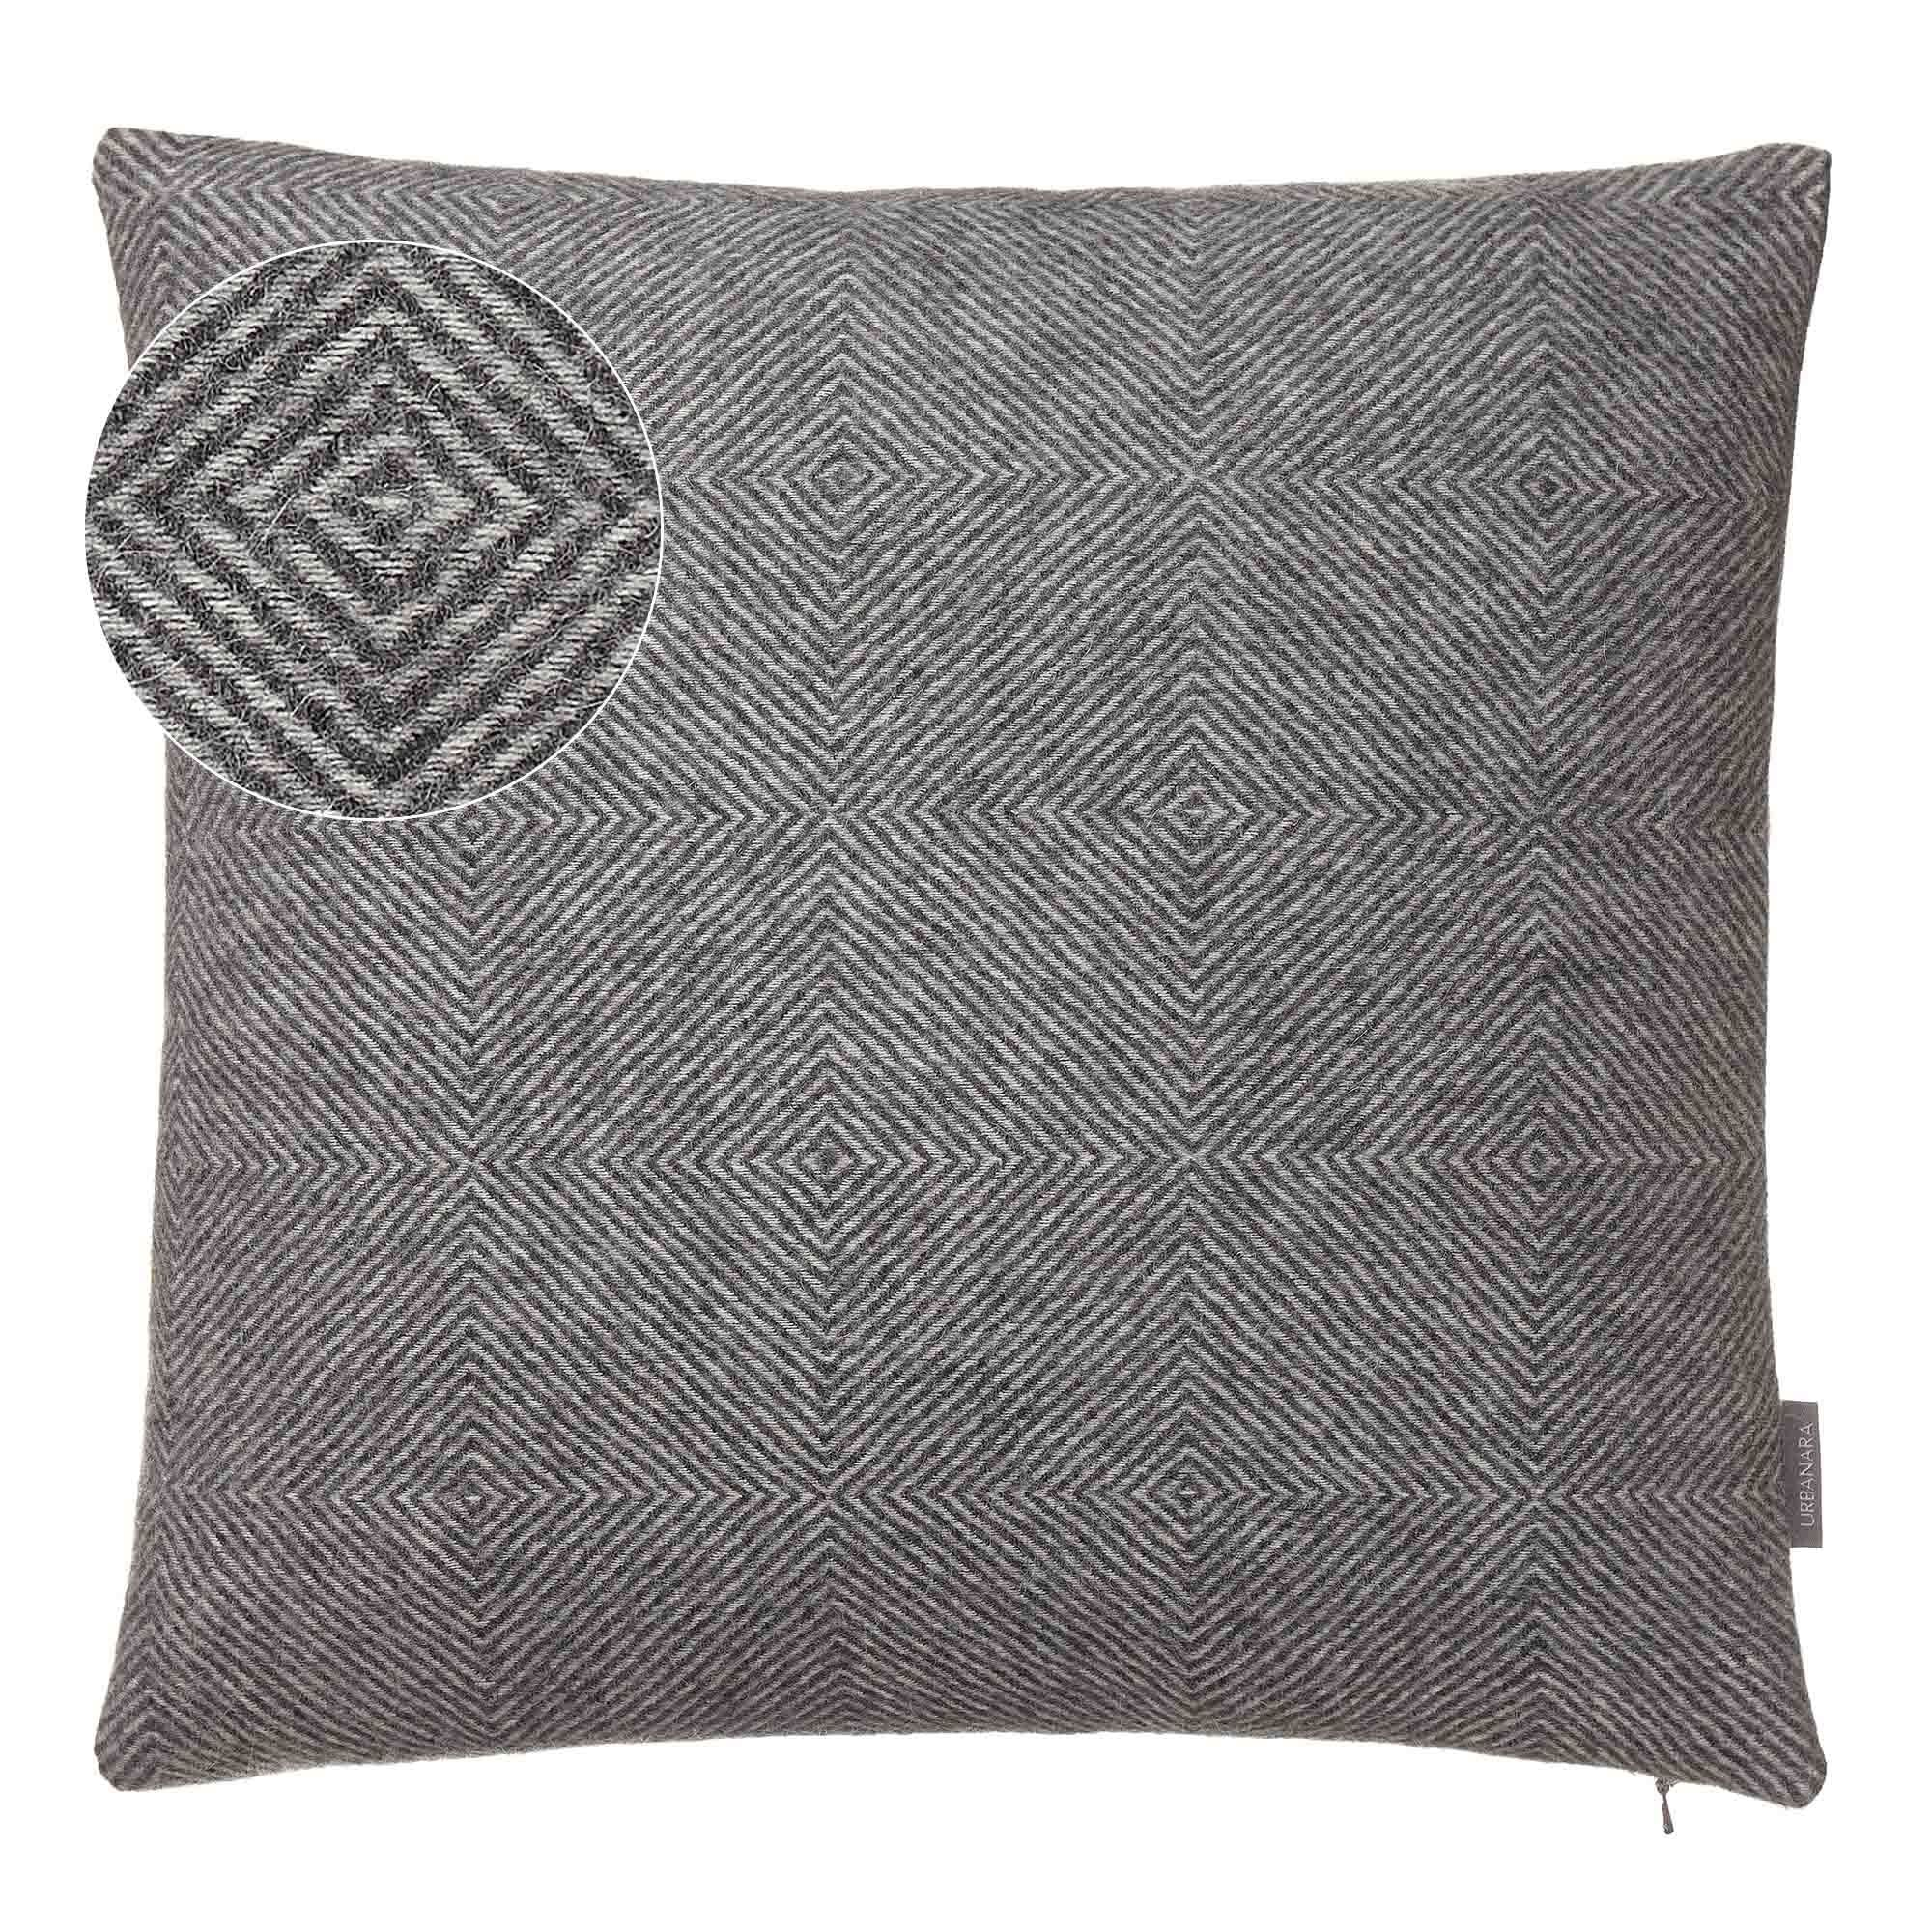 Alanga cushion cover, grey melange & off-white, 100% baby alpaca wool